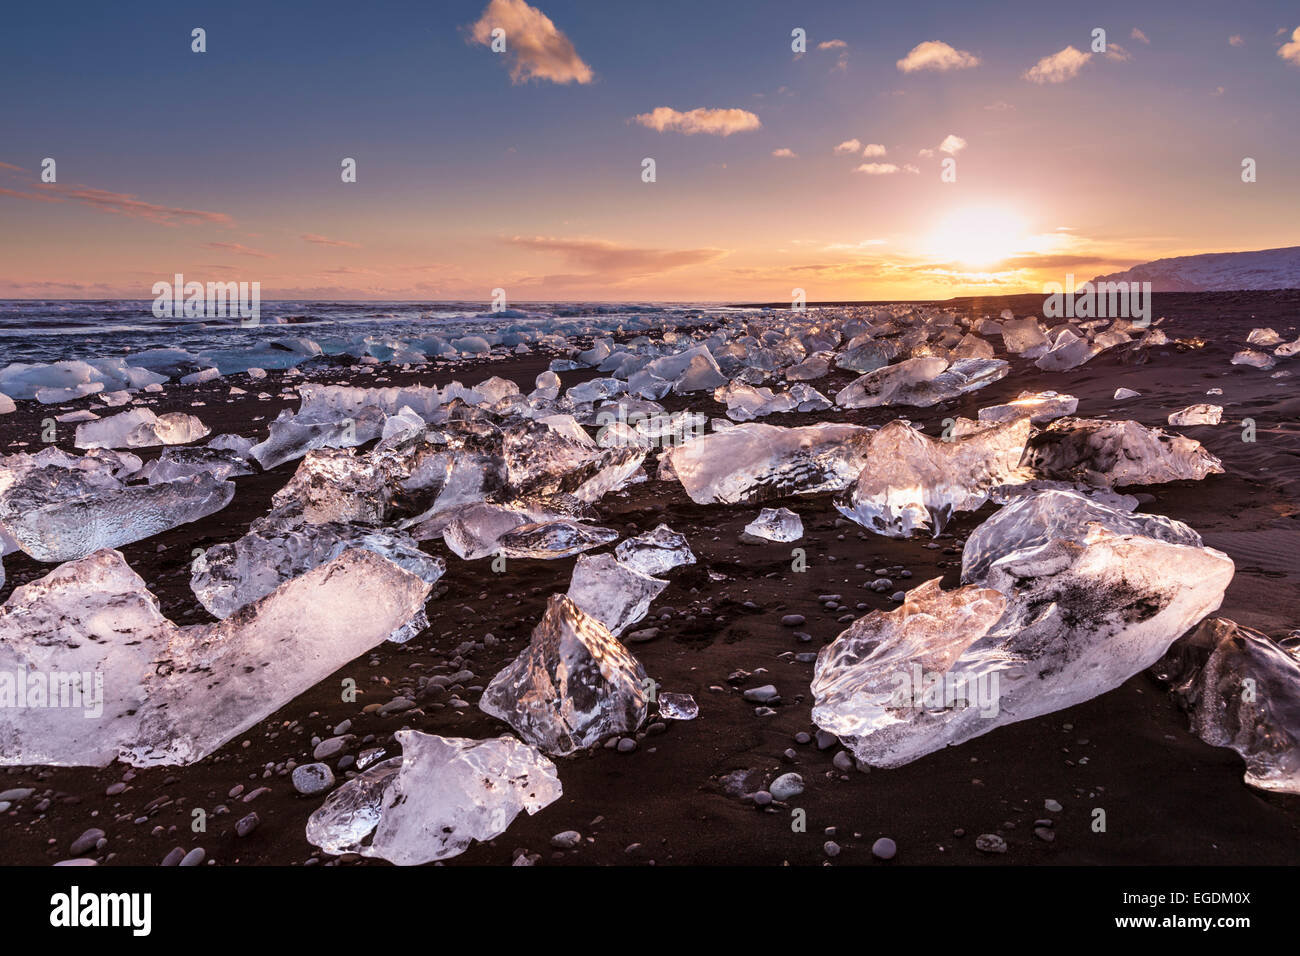 Icebergs and ice on Jokulsarlon black beach at sunset Jokulsarlon Iceland - Stock Image